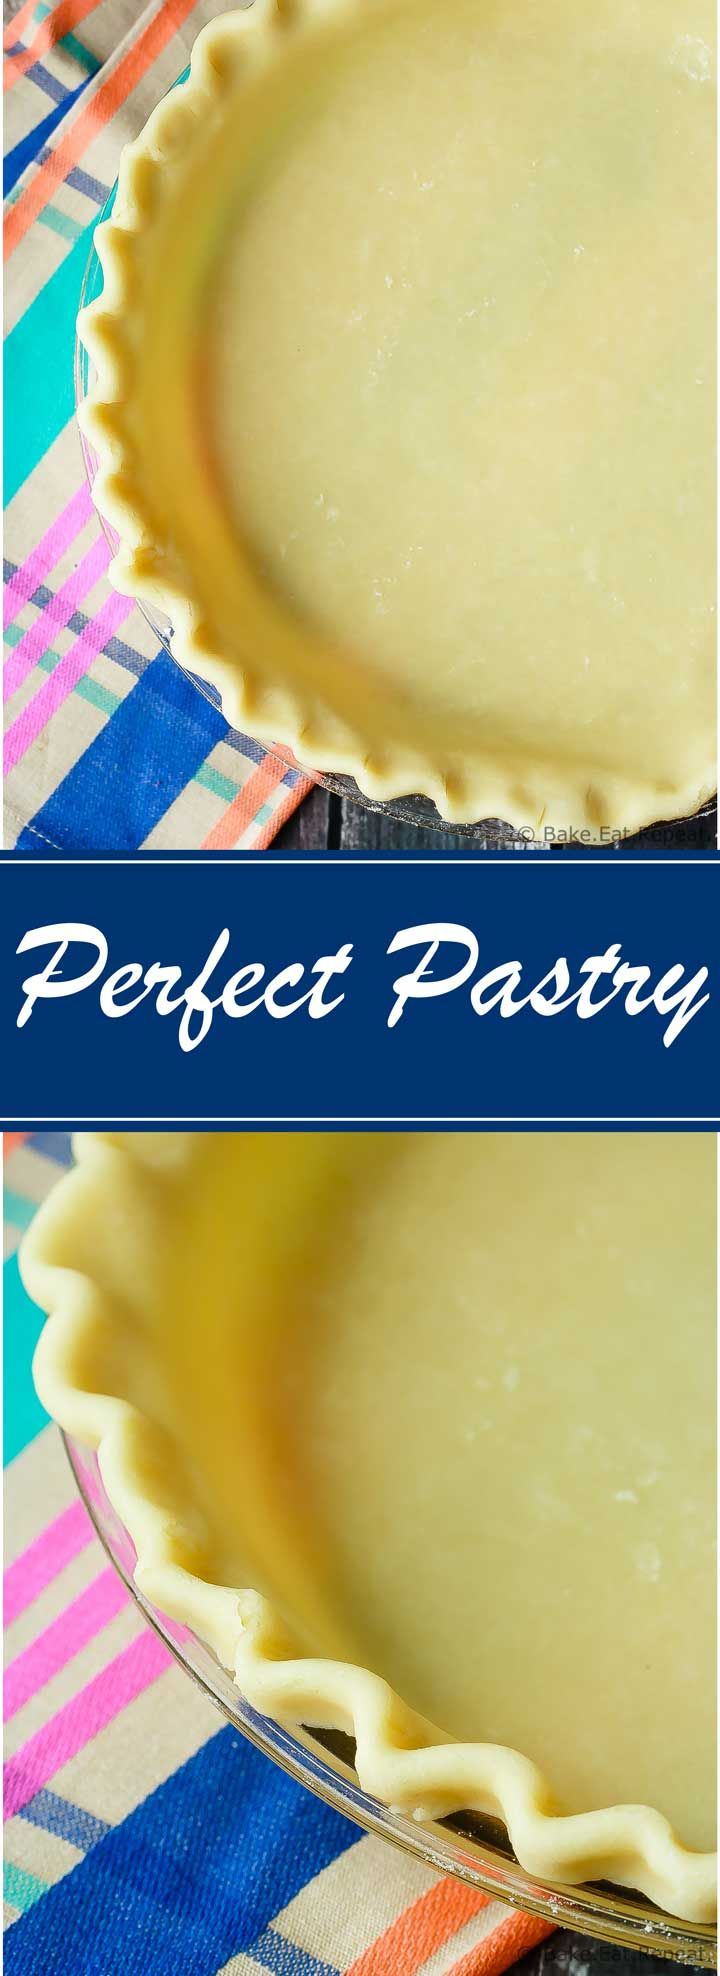 Perfect Pastry - This is the perfect pastry you've been looking for. Everyone needs a go to pastry recipe, this is mine! Perfect, easy, flaky pastry.